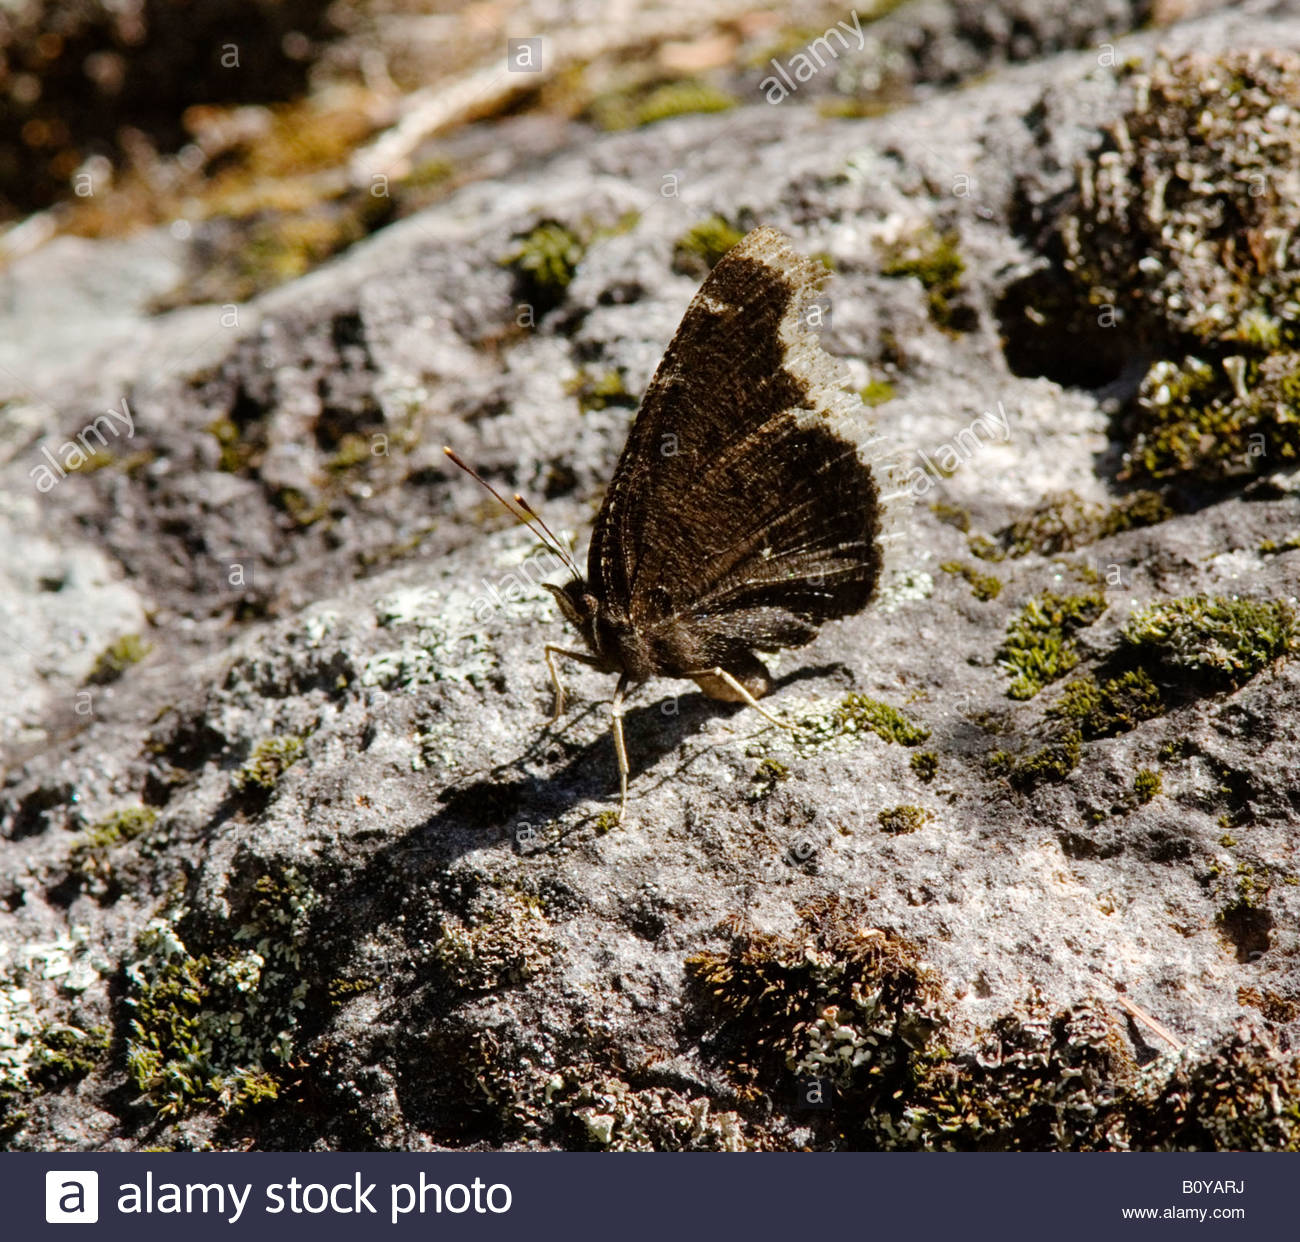 Mourning Cloak Nymphalis antiopa Butterfly  Nymphalidae Subfamily Nymphalinae Stock Photo